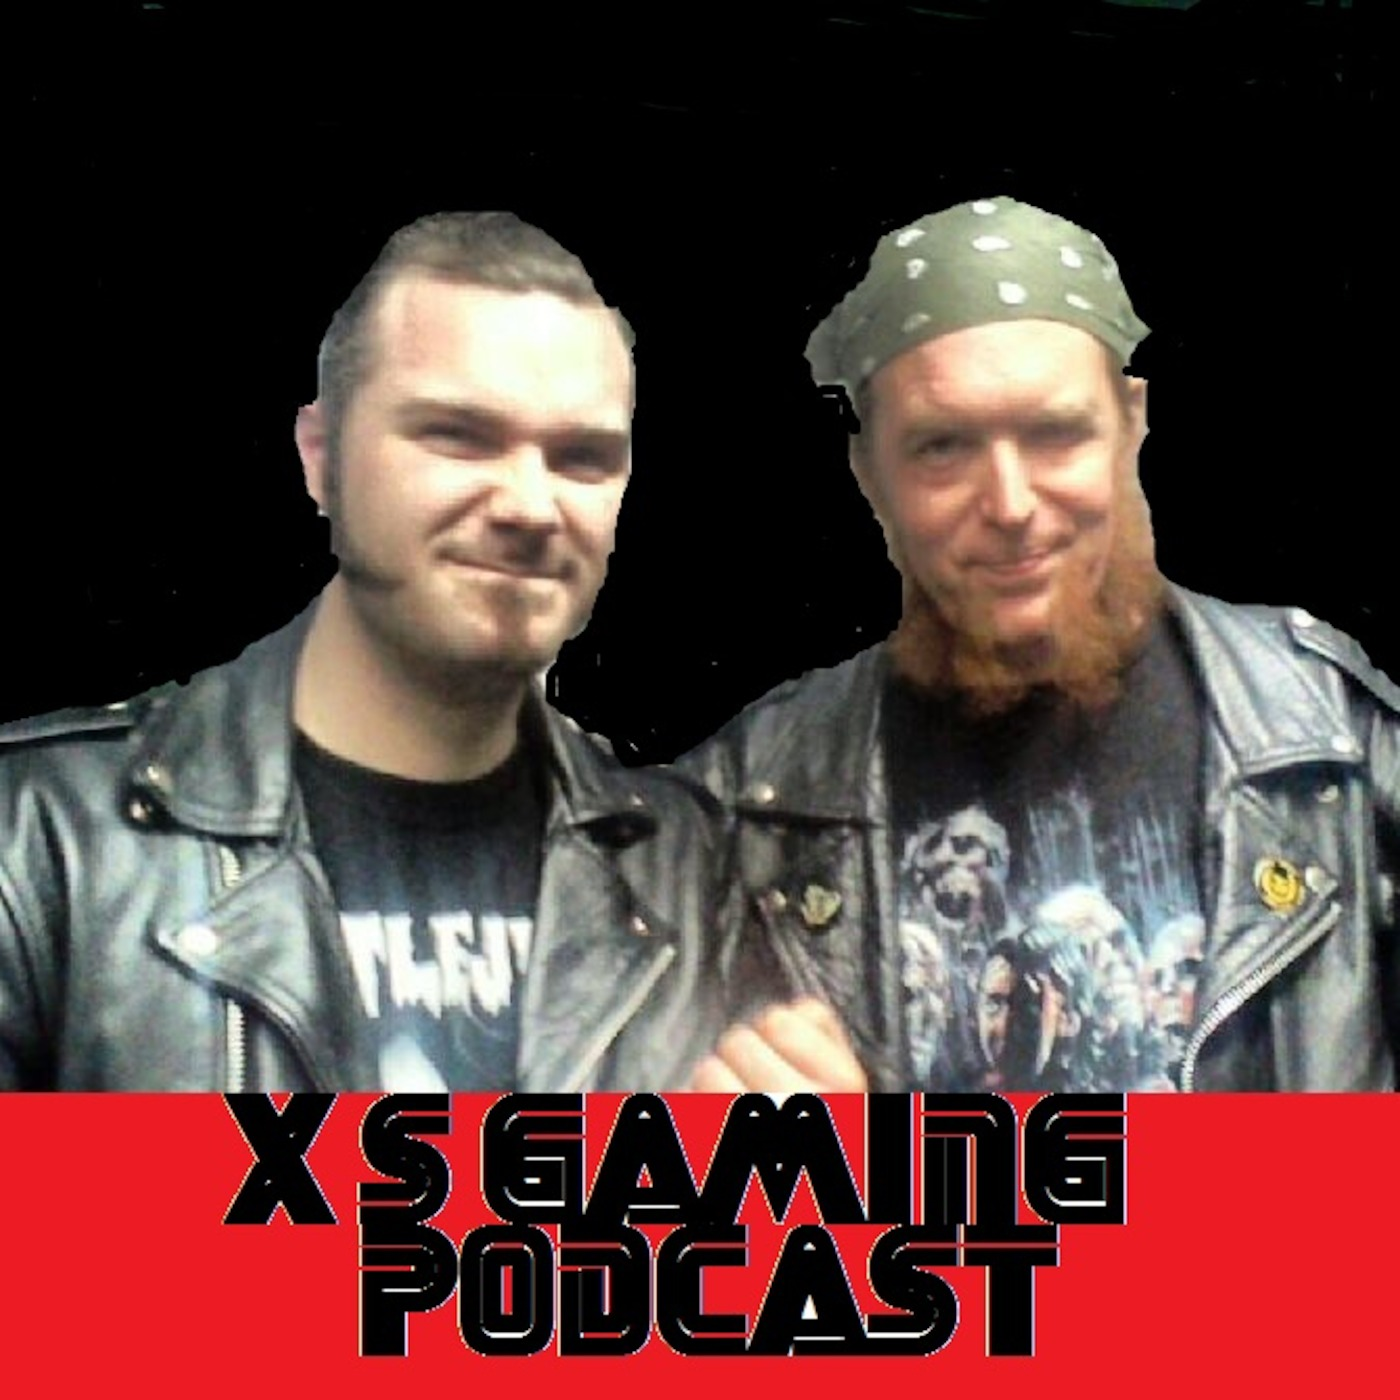 X S Gaming Podcast